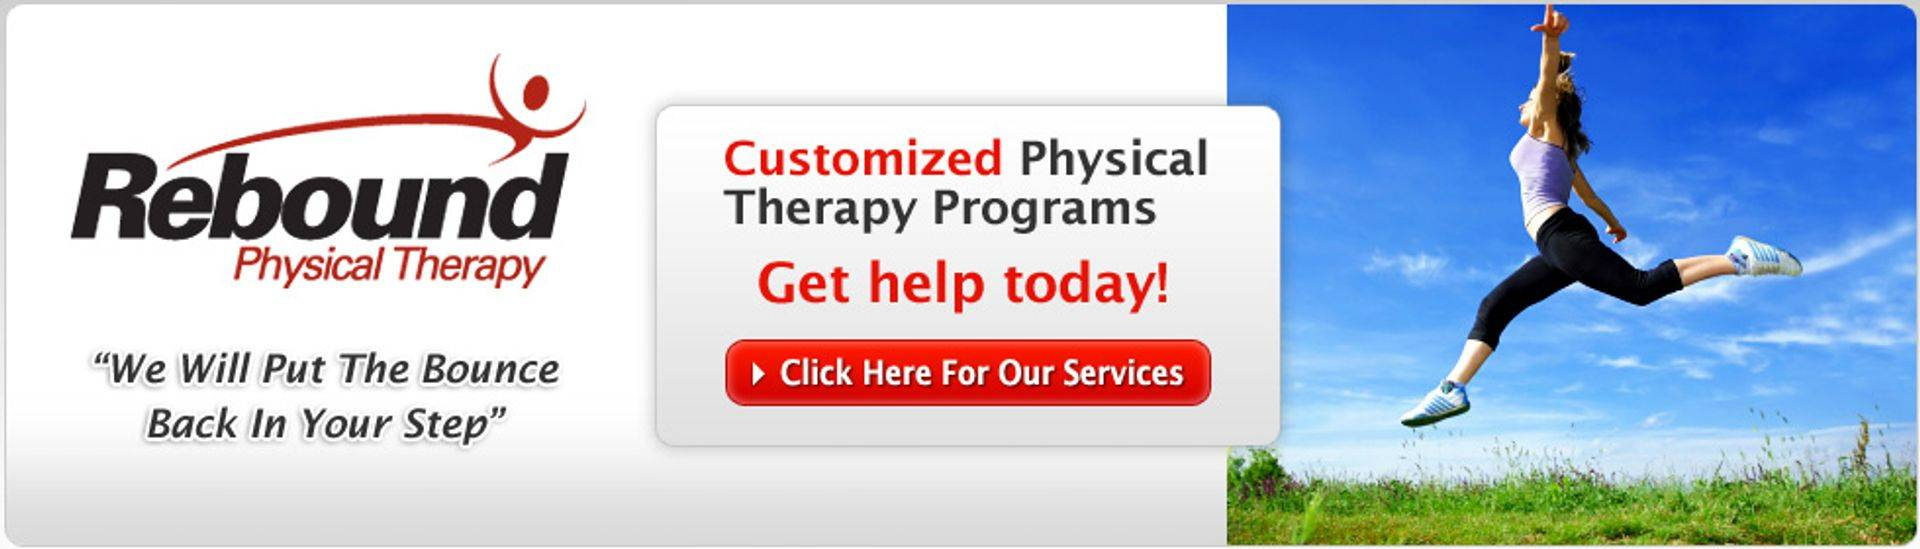 Rebound Physical Therapy Header